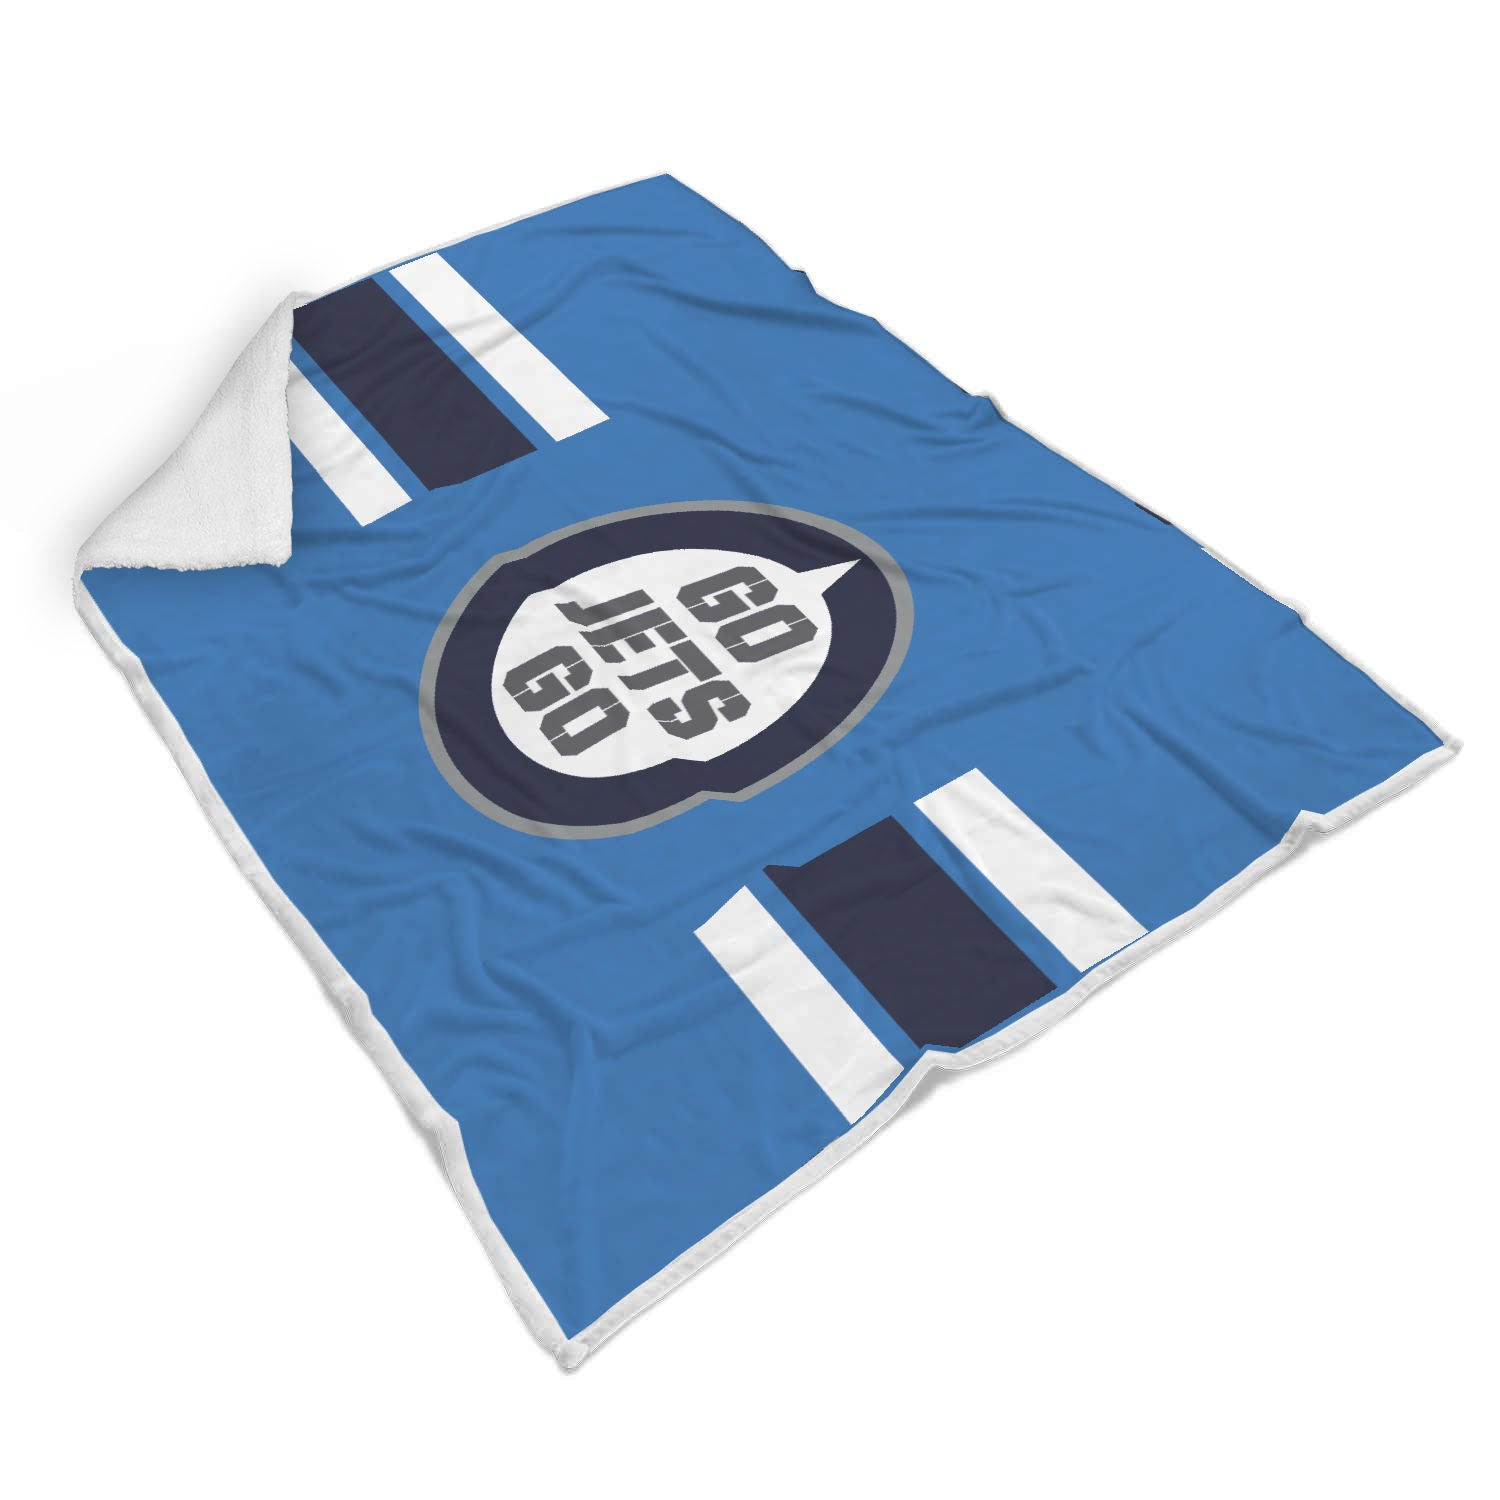 Premium Custom made Exclusive For Fans Blankets - Blindly Shop